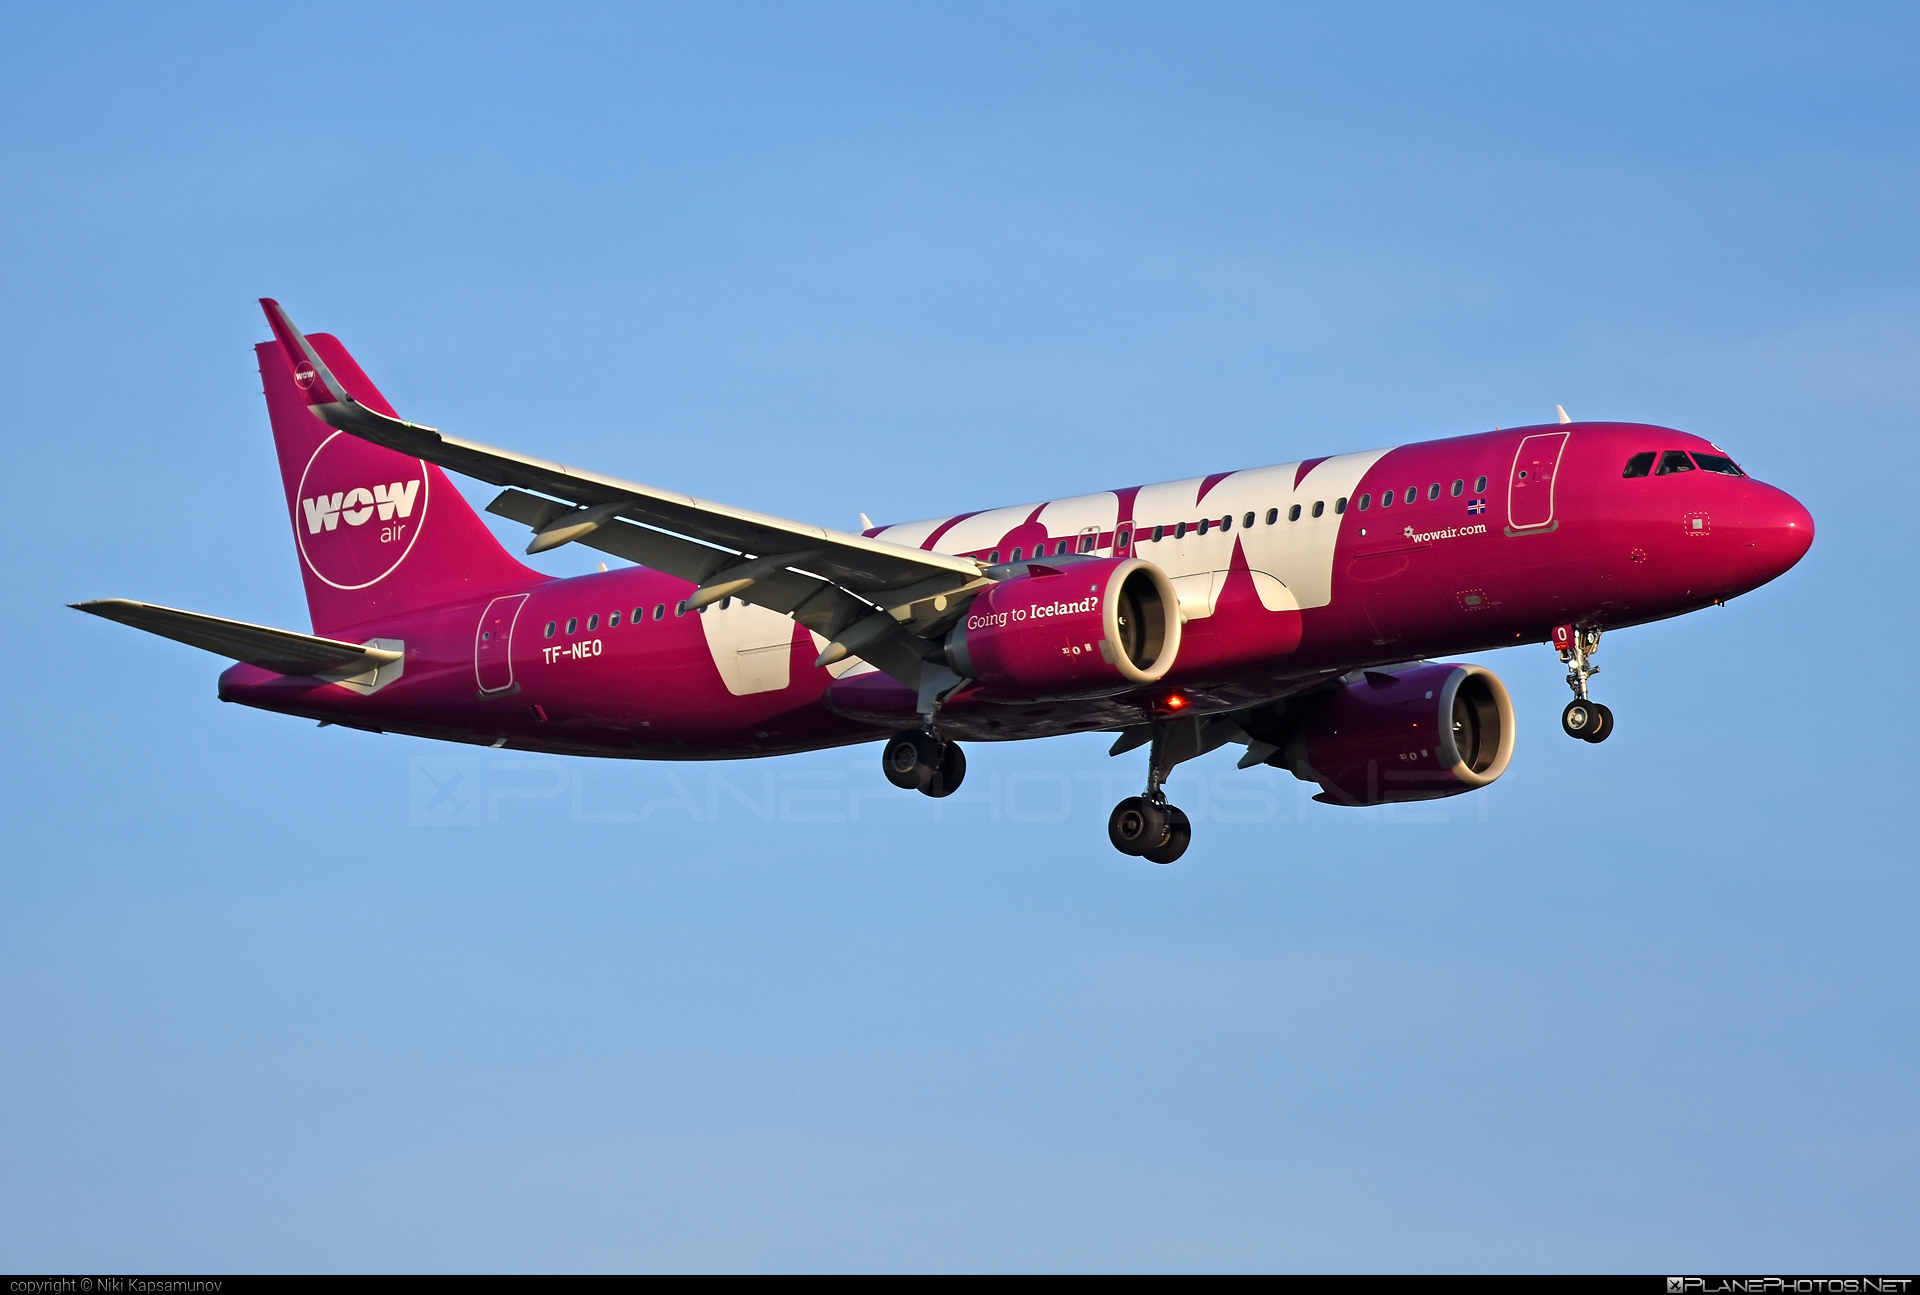 Airbus A320-251N - TF-NEO operated by WOW air #a320 #a320family #a320neo #airbus #airbus320